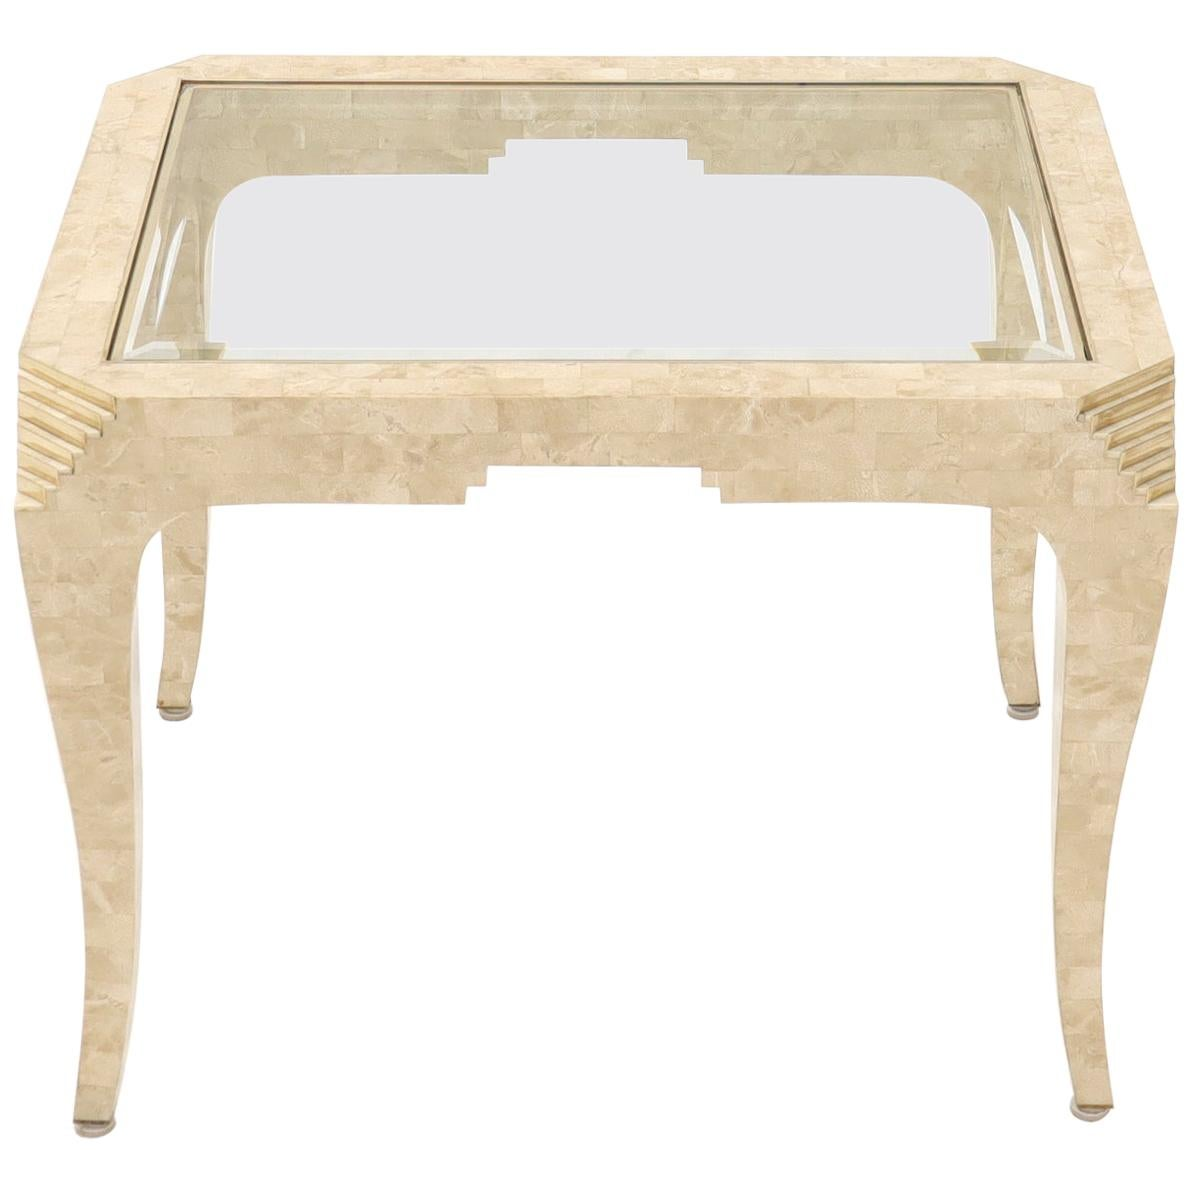 Tessellated Stone Brass Inlay Rectangular Side End Table Glass Top